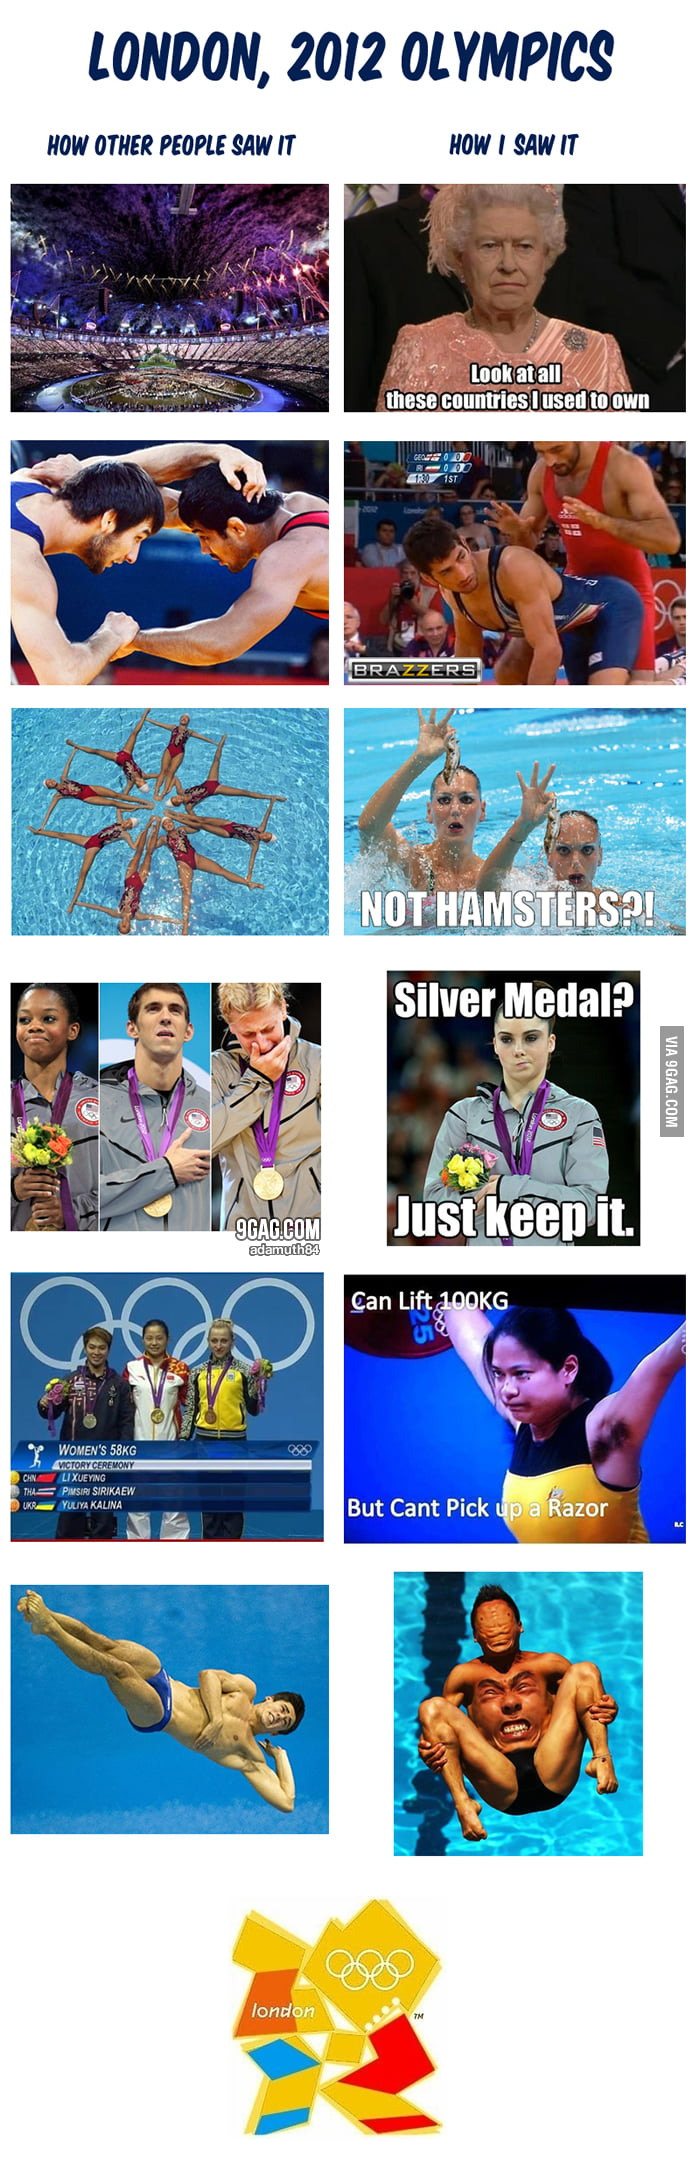 How I saw the Olympics